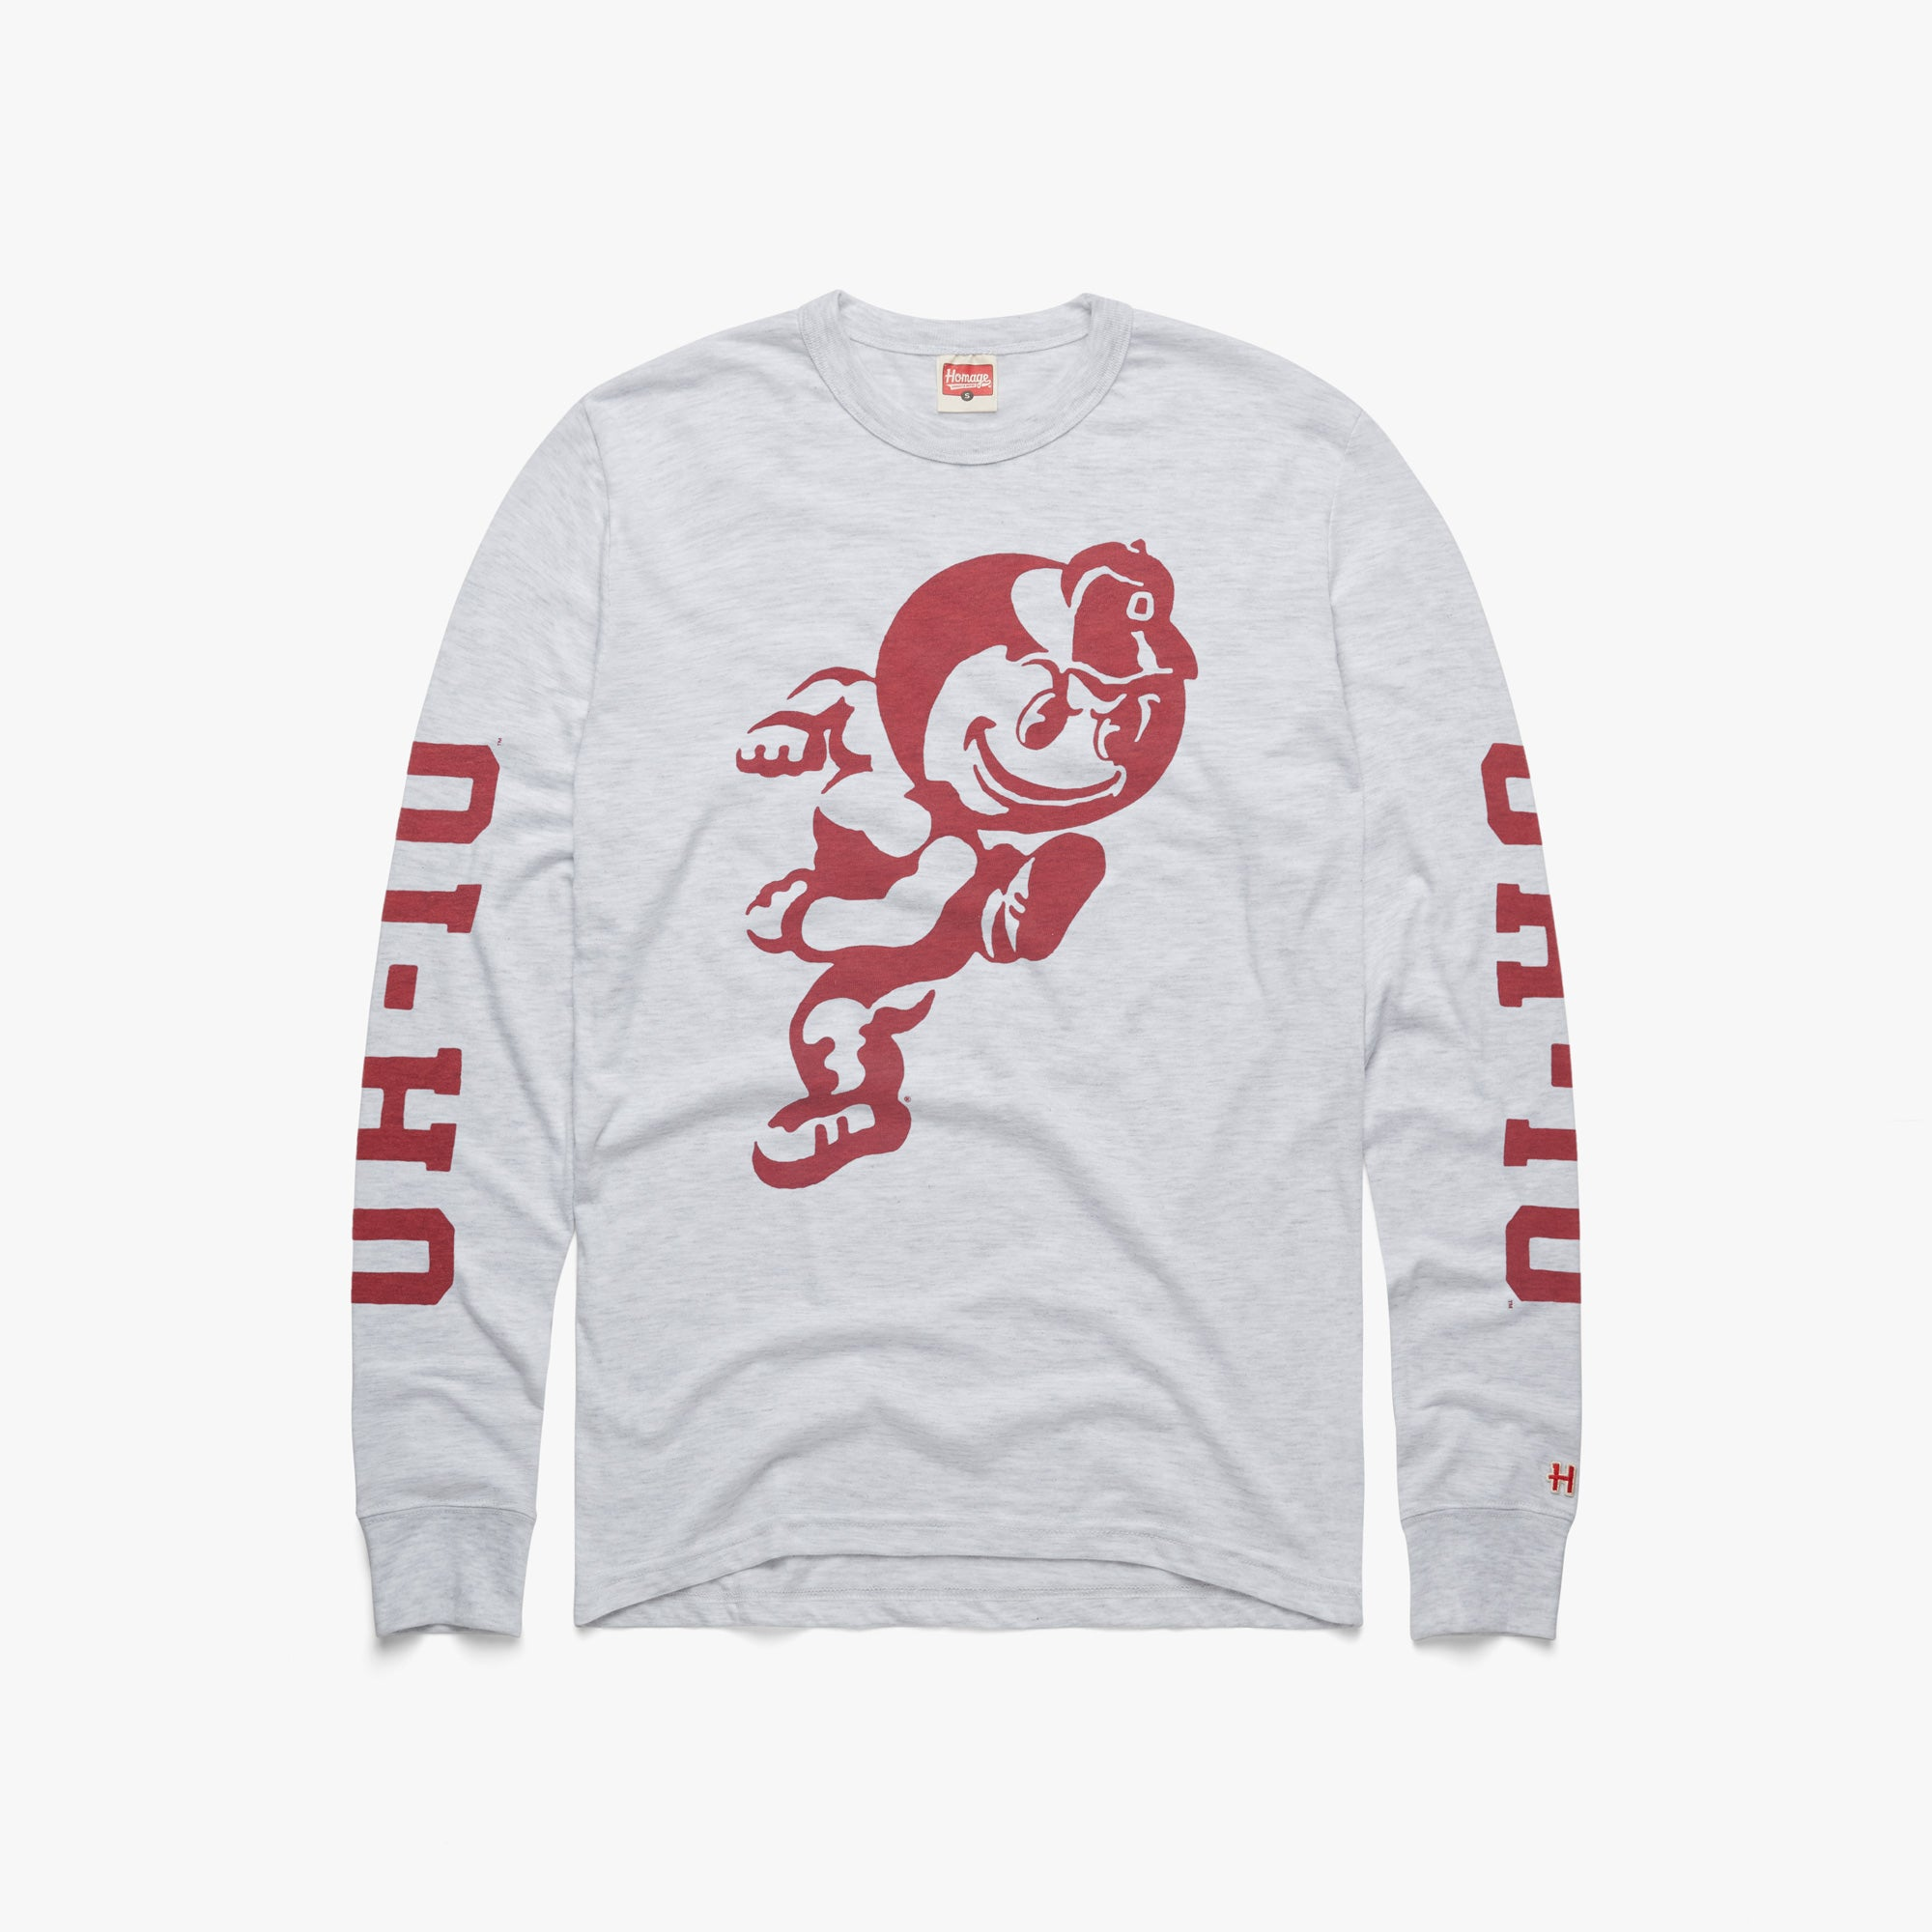 Brutus The Buckeye OH-IO Long Sleeve Tee